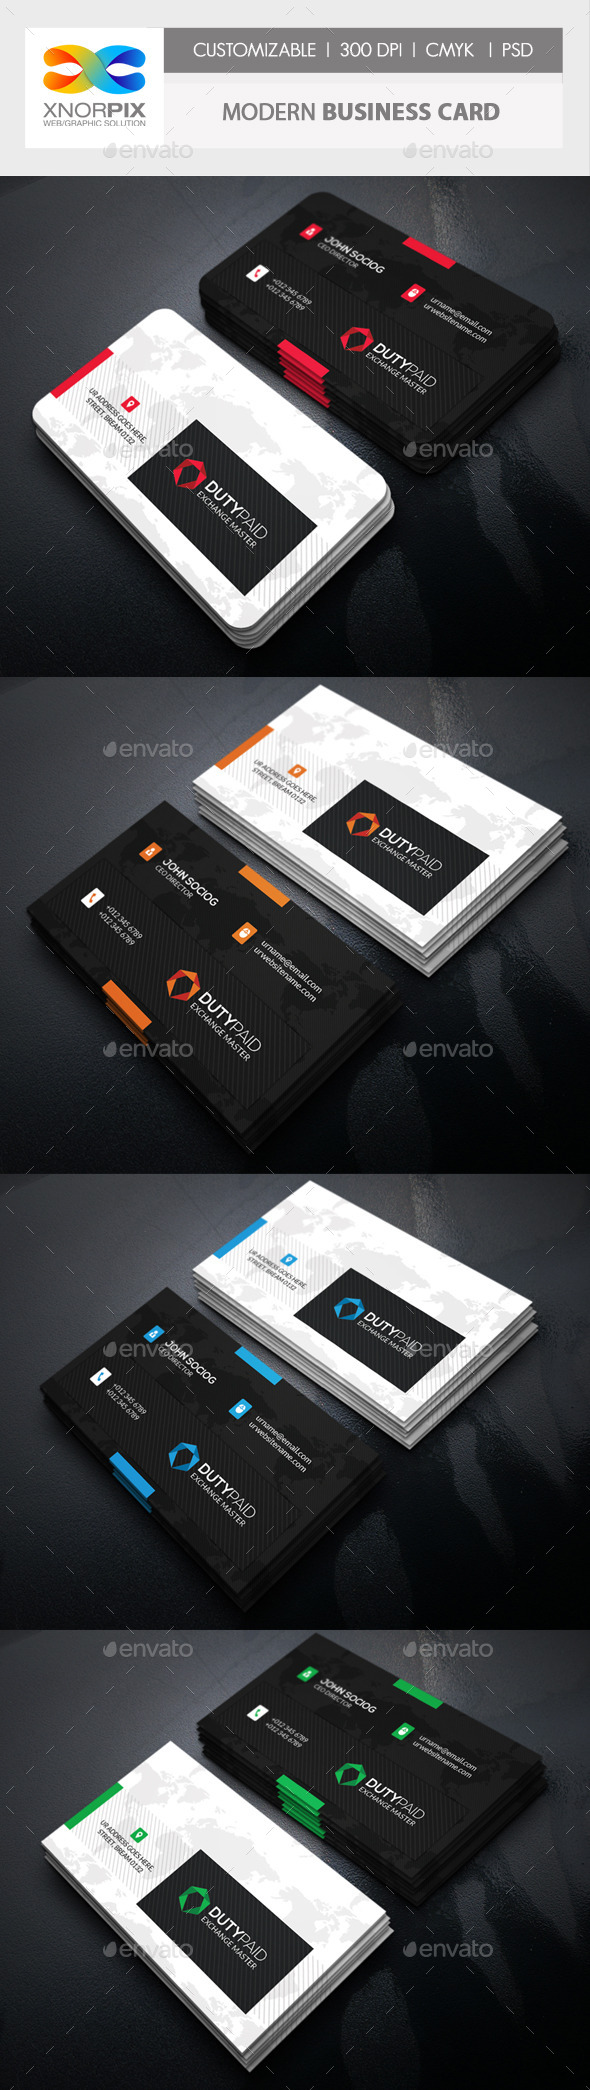 GraphicRiver Modern Business Card 10870341